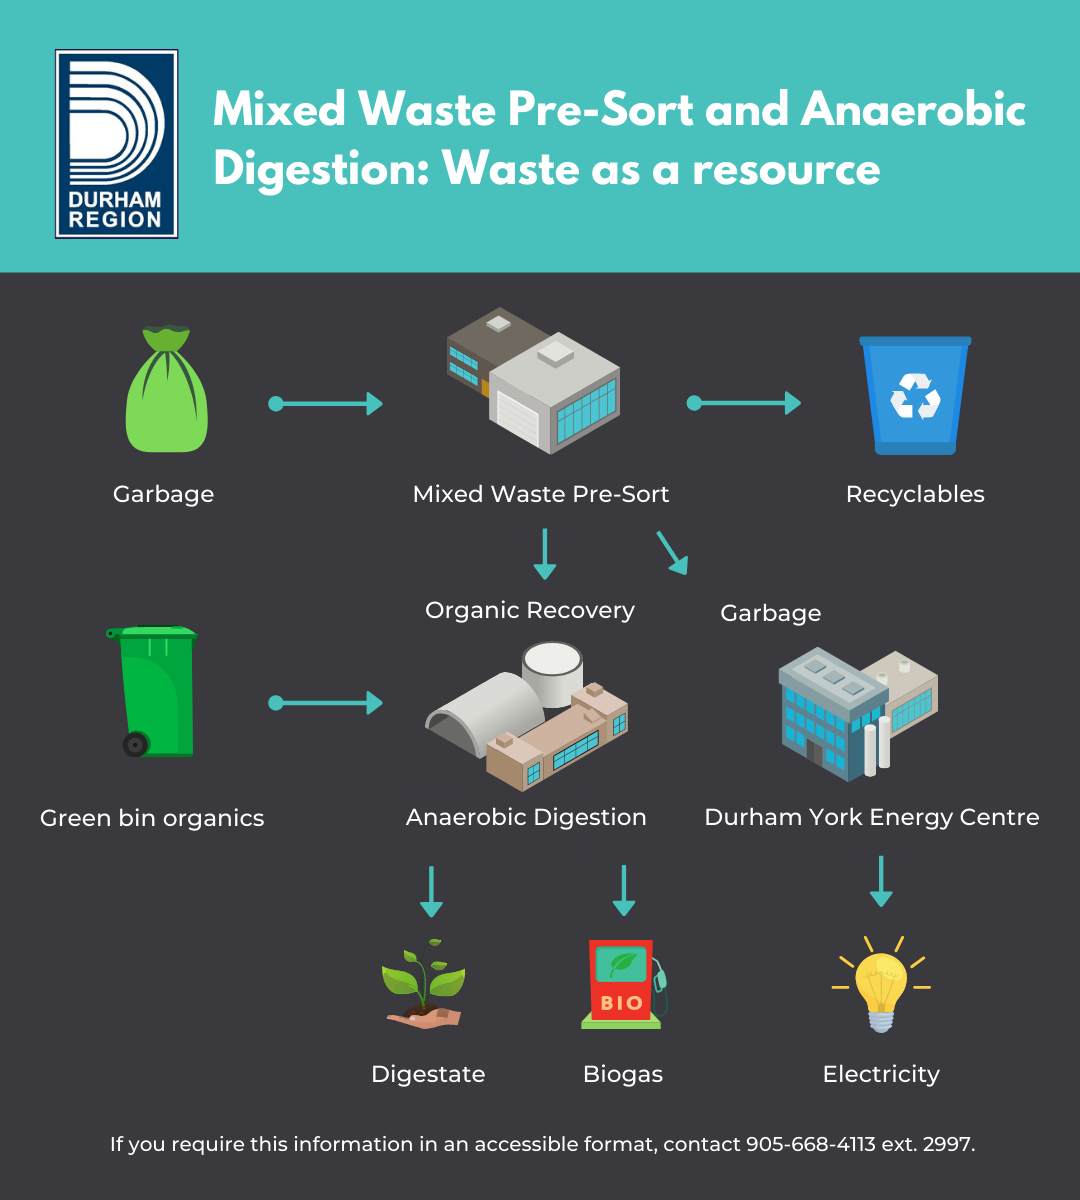 Diagram of Mixed Waste Pre-sort and Anaerobic Digestion